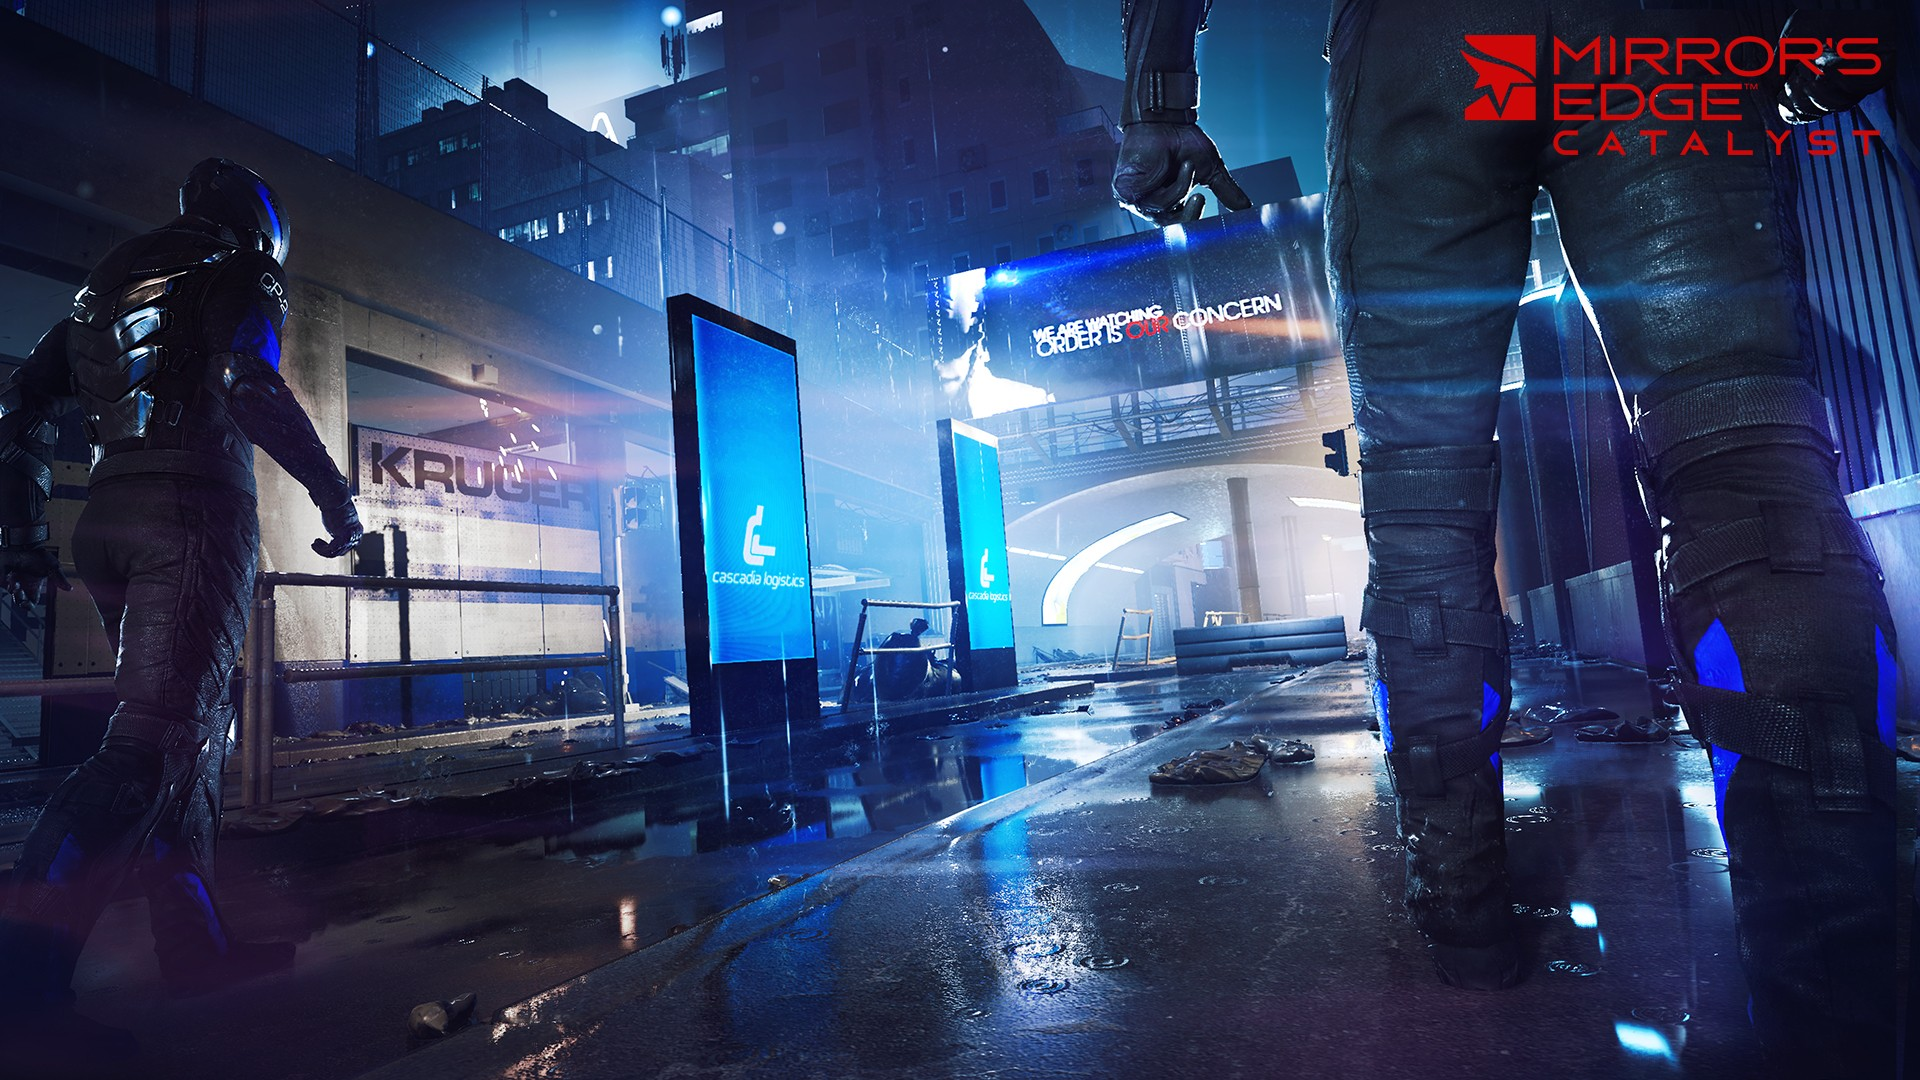 Mirror Edge Catalyst Wallpaper: Mirrors Edge Catalyst HD, HD Games, 4k Wallpapers, Images